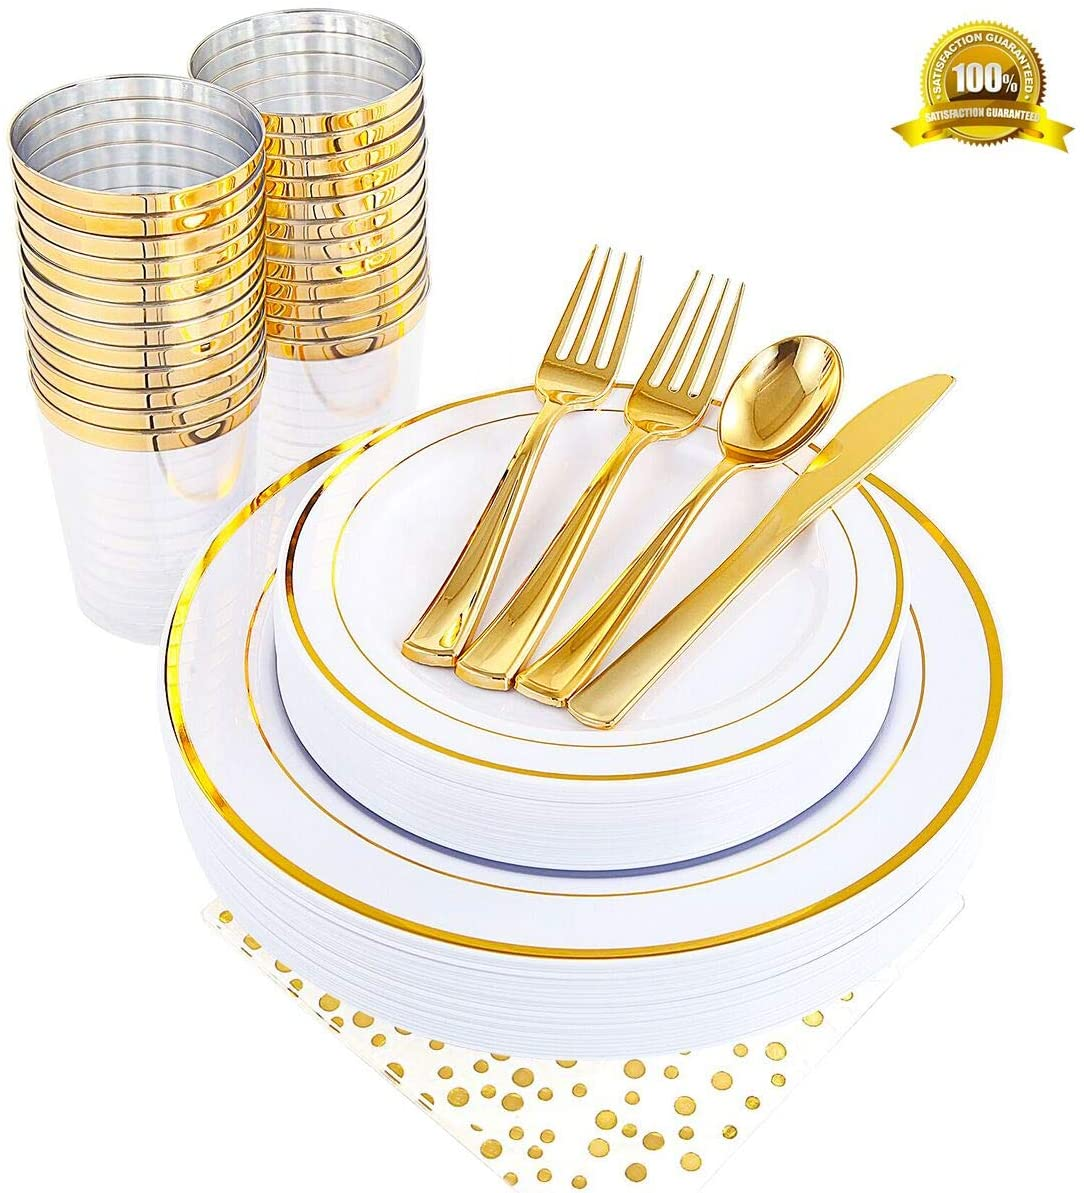 ENUOSUMA 200 Piece Plastic Plates, Dinnerware & Cups Set - Gold Rim Plates -Disposable Tableware include Dinner Plates Salad Plates, Cups, Spoons, Forks, Knives &Napkins for Wedding or Party